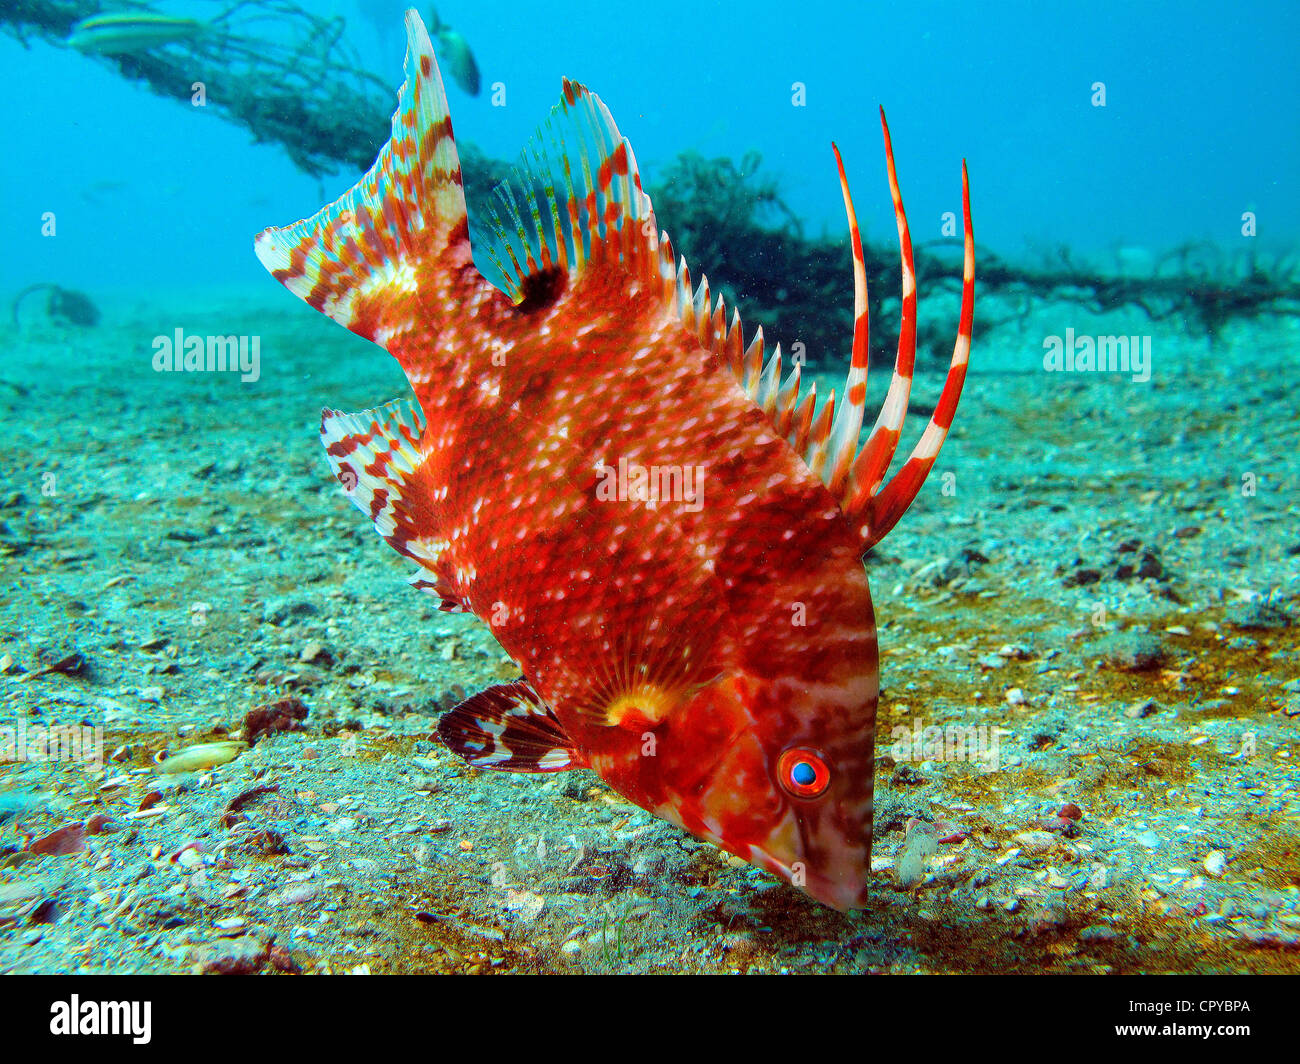 Florida Reef Fish Stock Photos & Florida Reef Fish Stock Images - Alamy